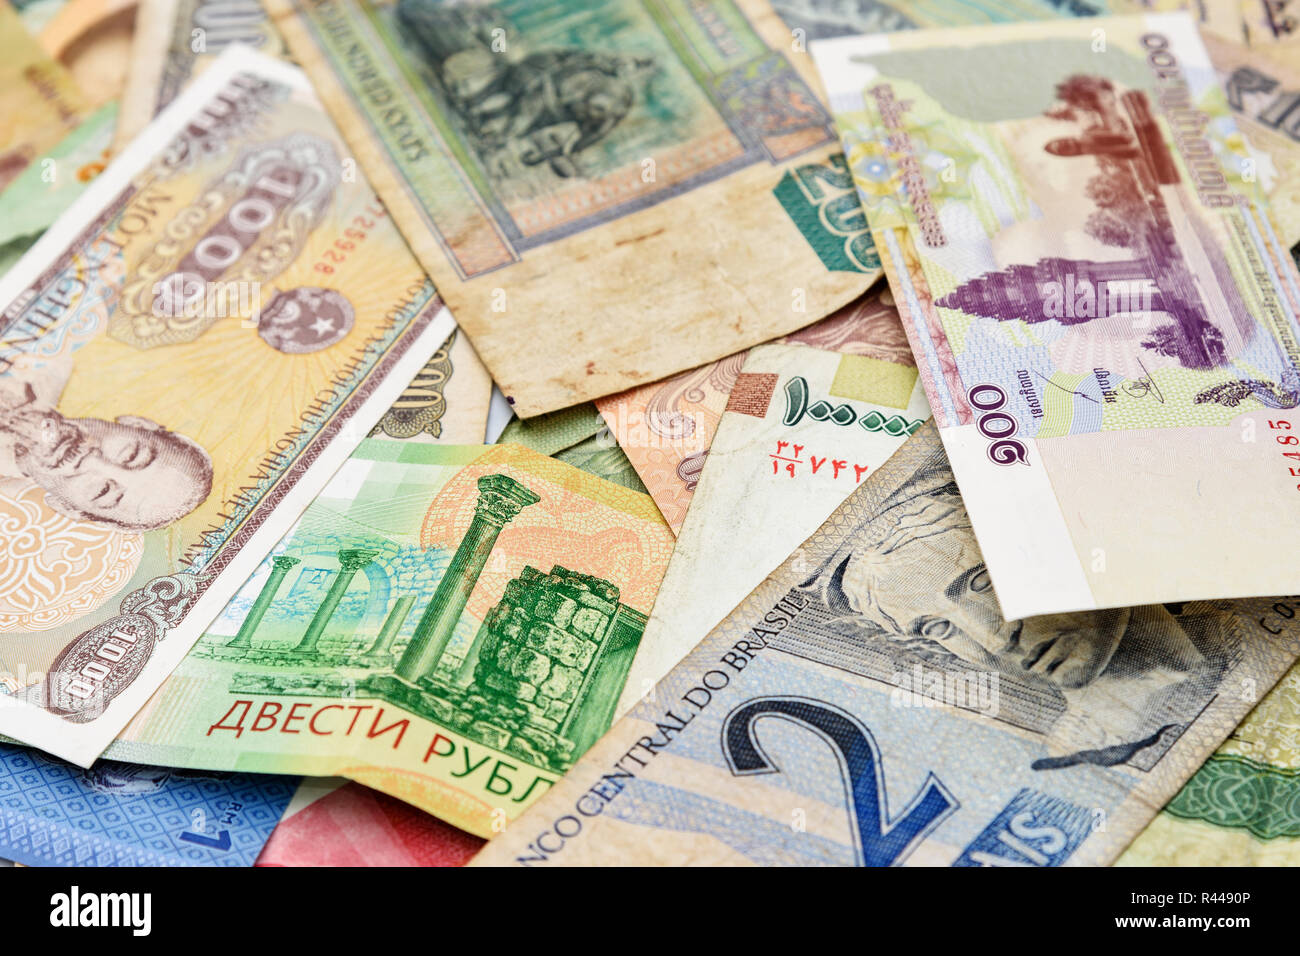 Cash money from different countries background - Stock Image